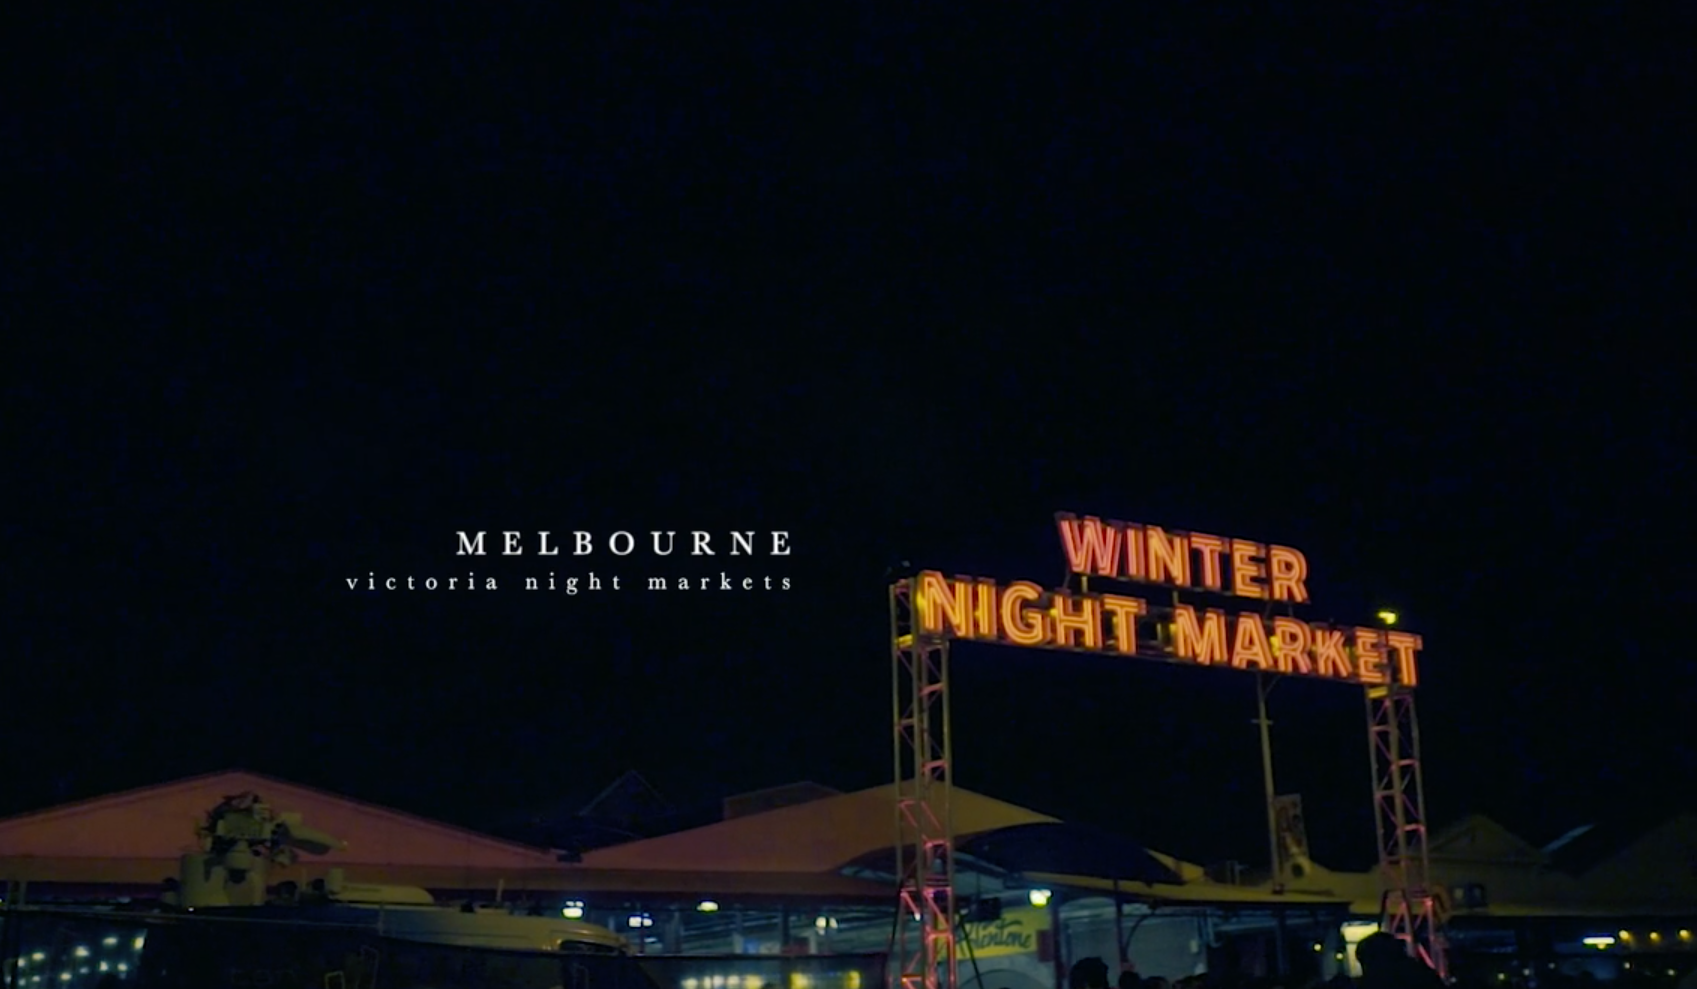 Promo film for Victoria Night Markets Melbourne